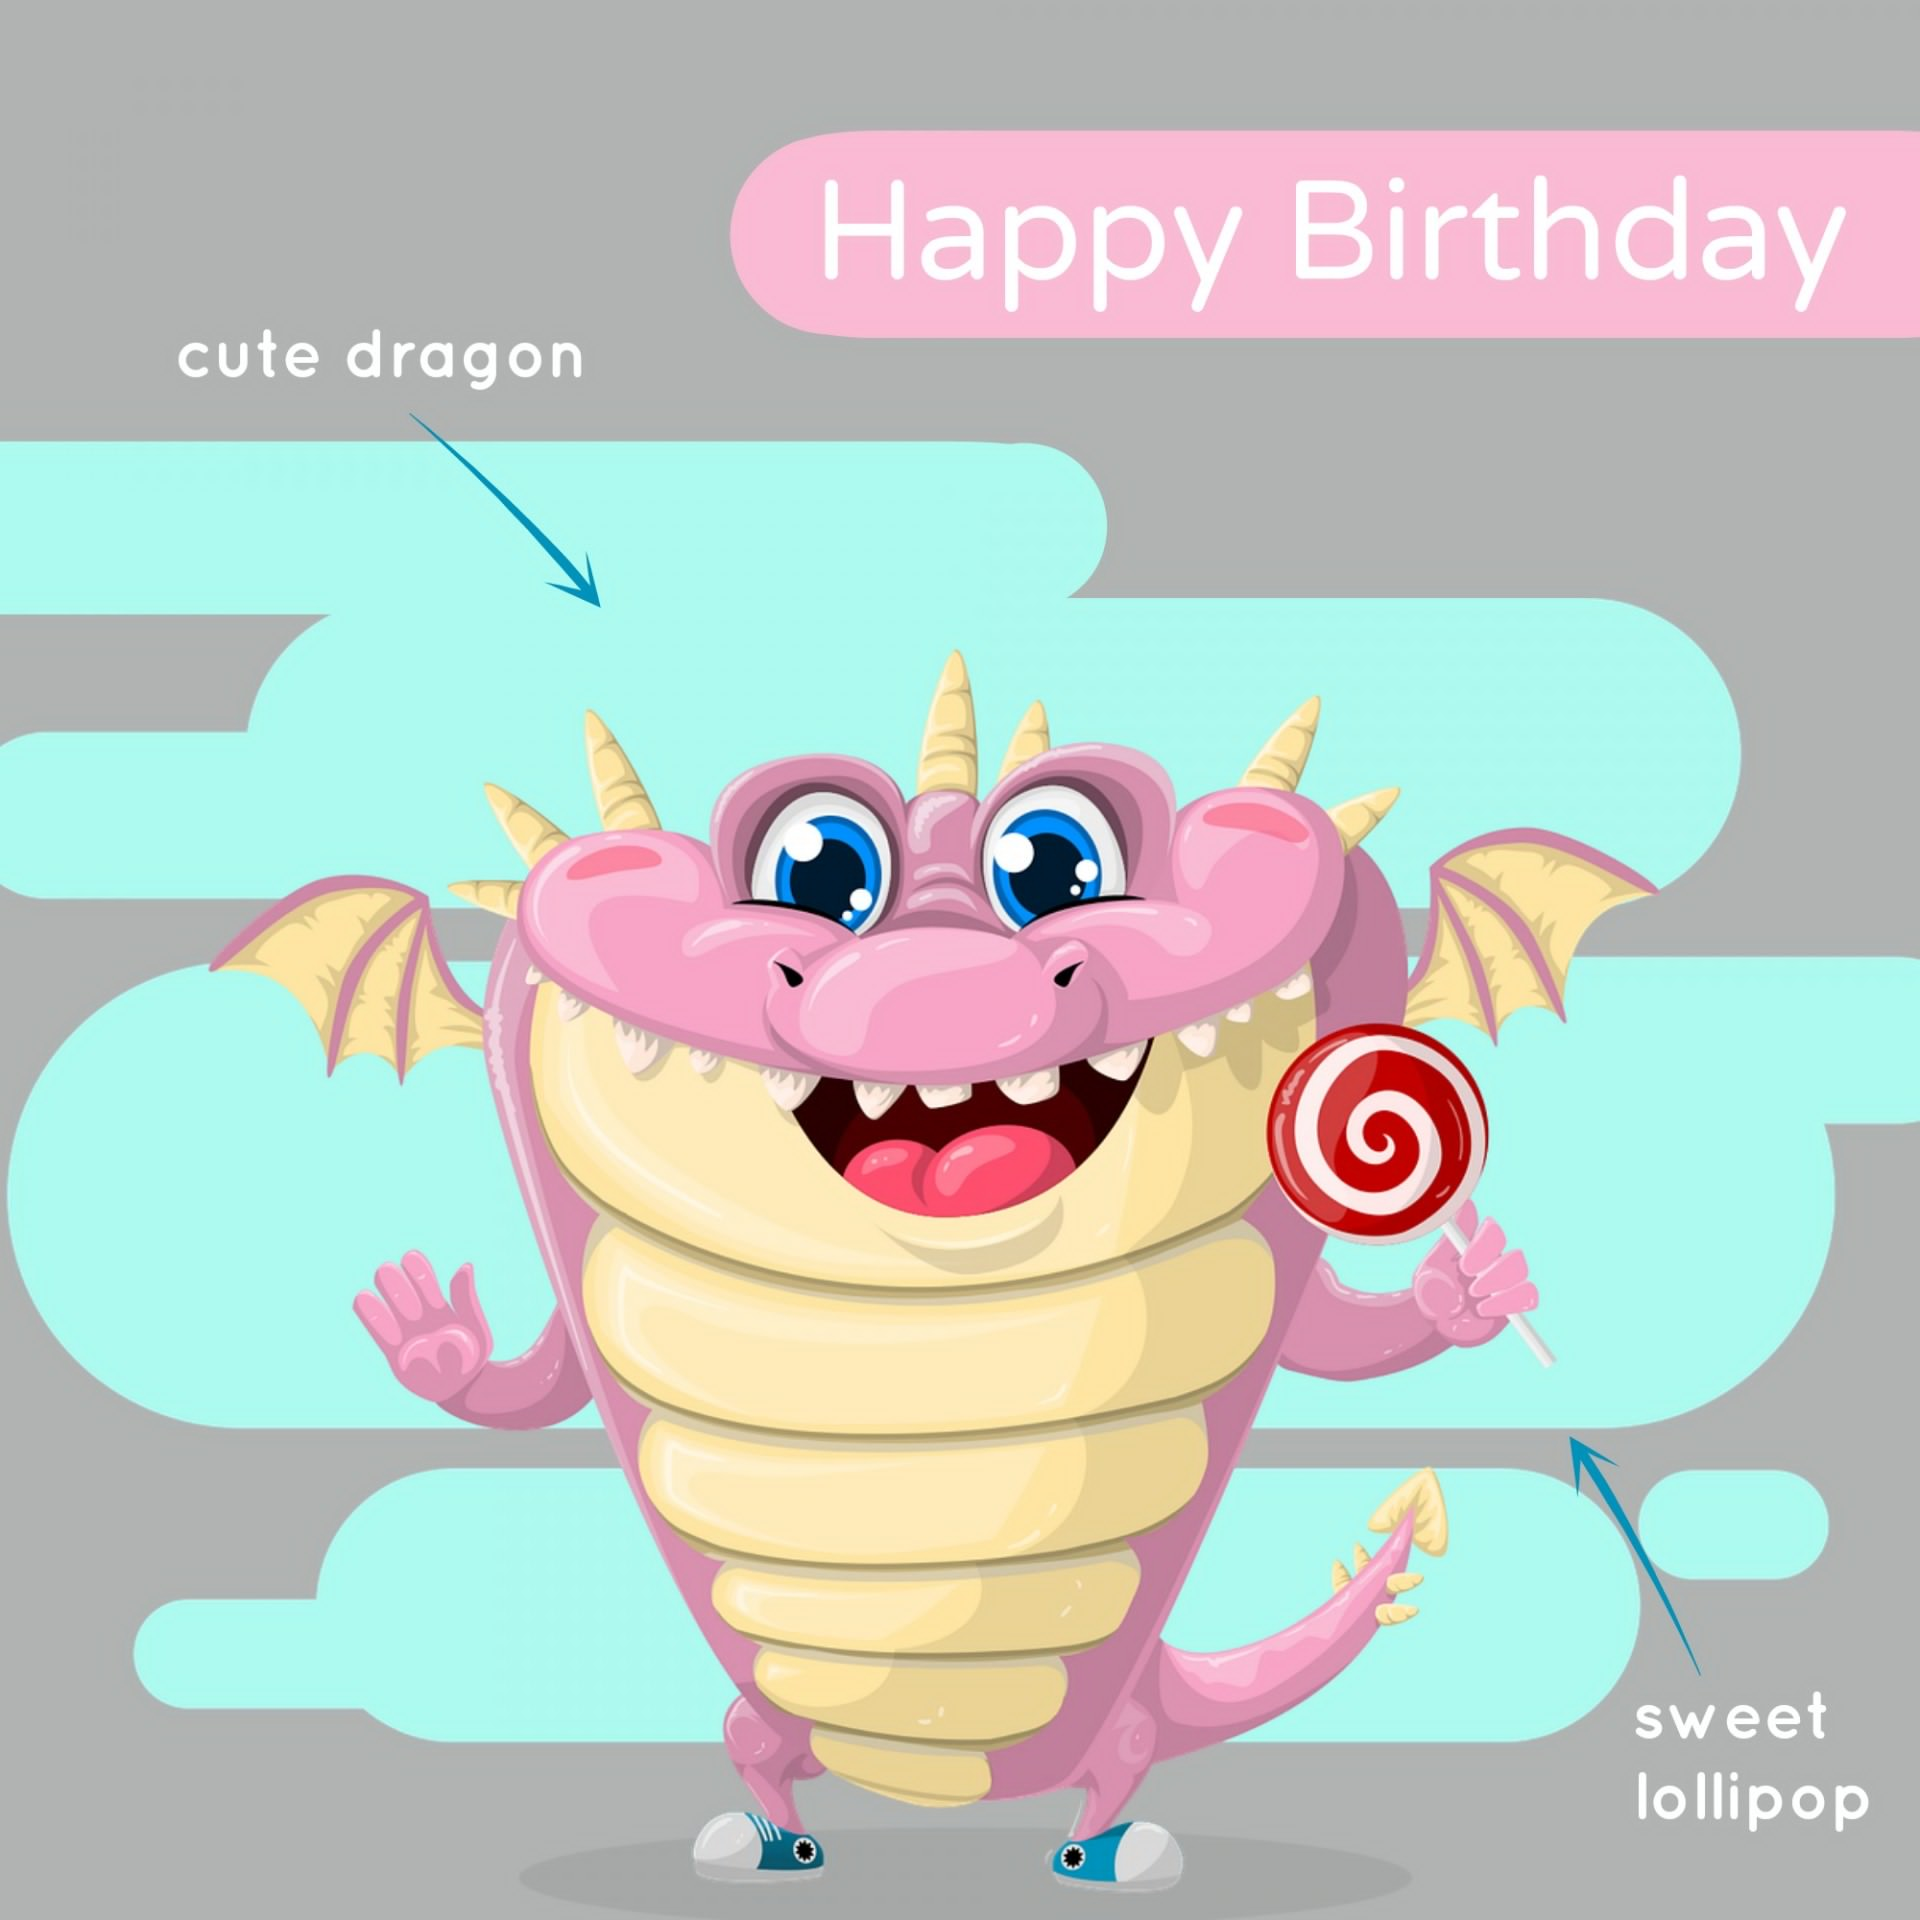 Happy Birthday Ecard Ecards Your Name